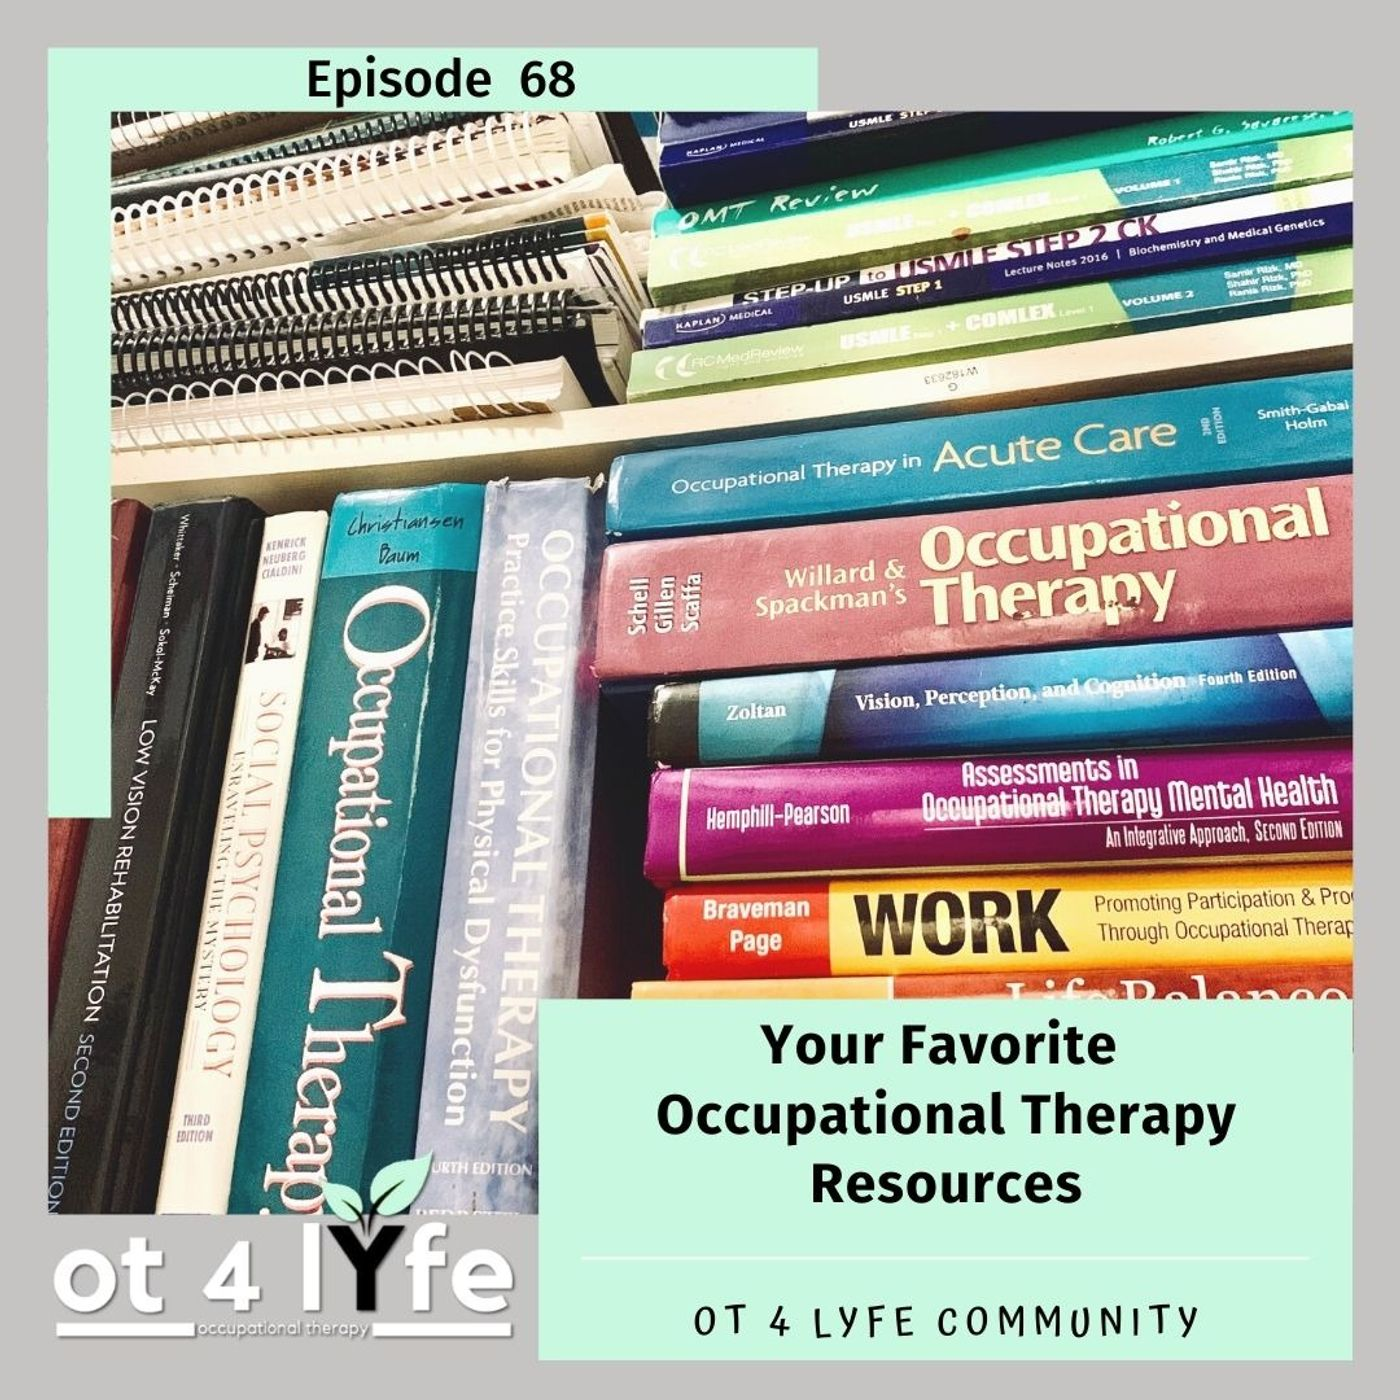 Your Favorite Occupational Therapy Resources